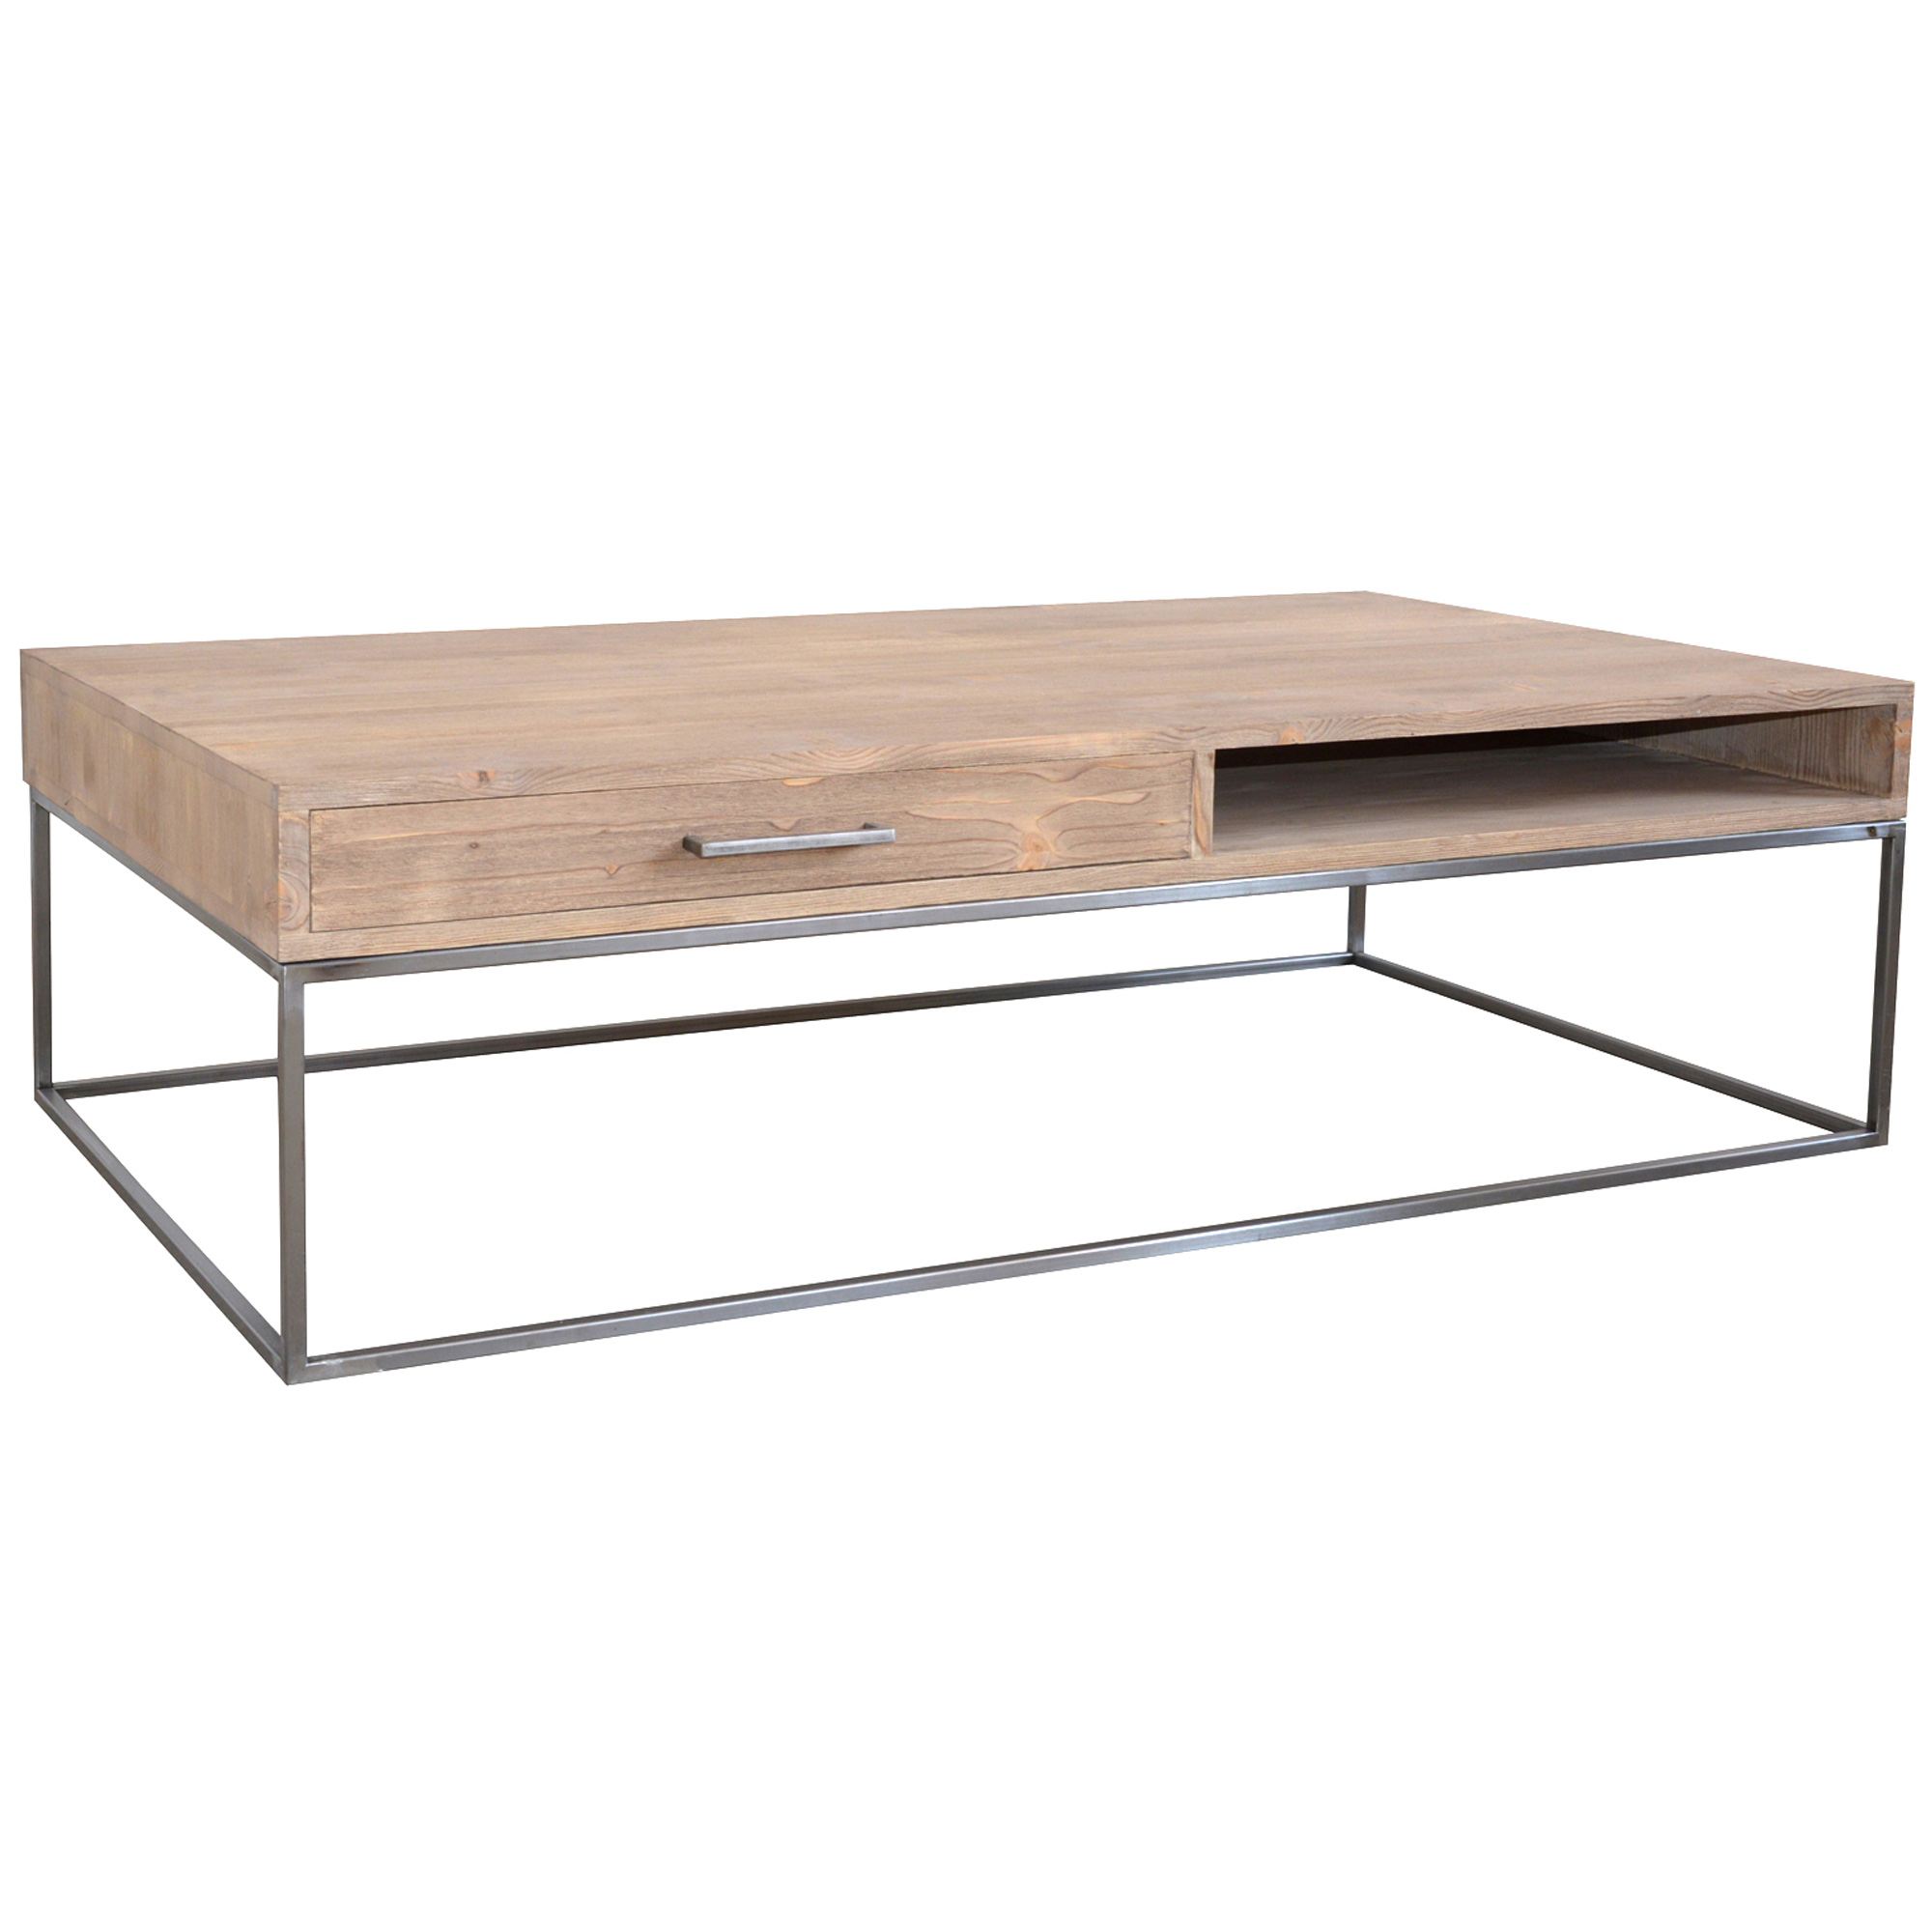 French coffee table with metal bar legs no 44 furniture cobham Aluminum coffee table legs